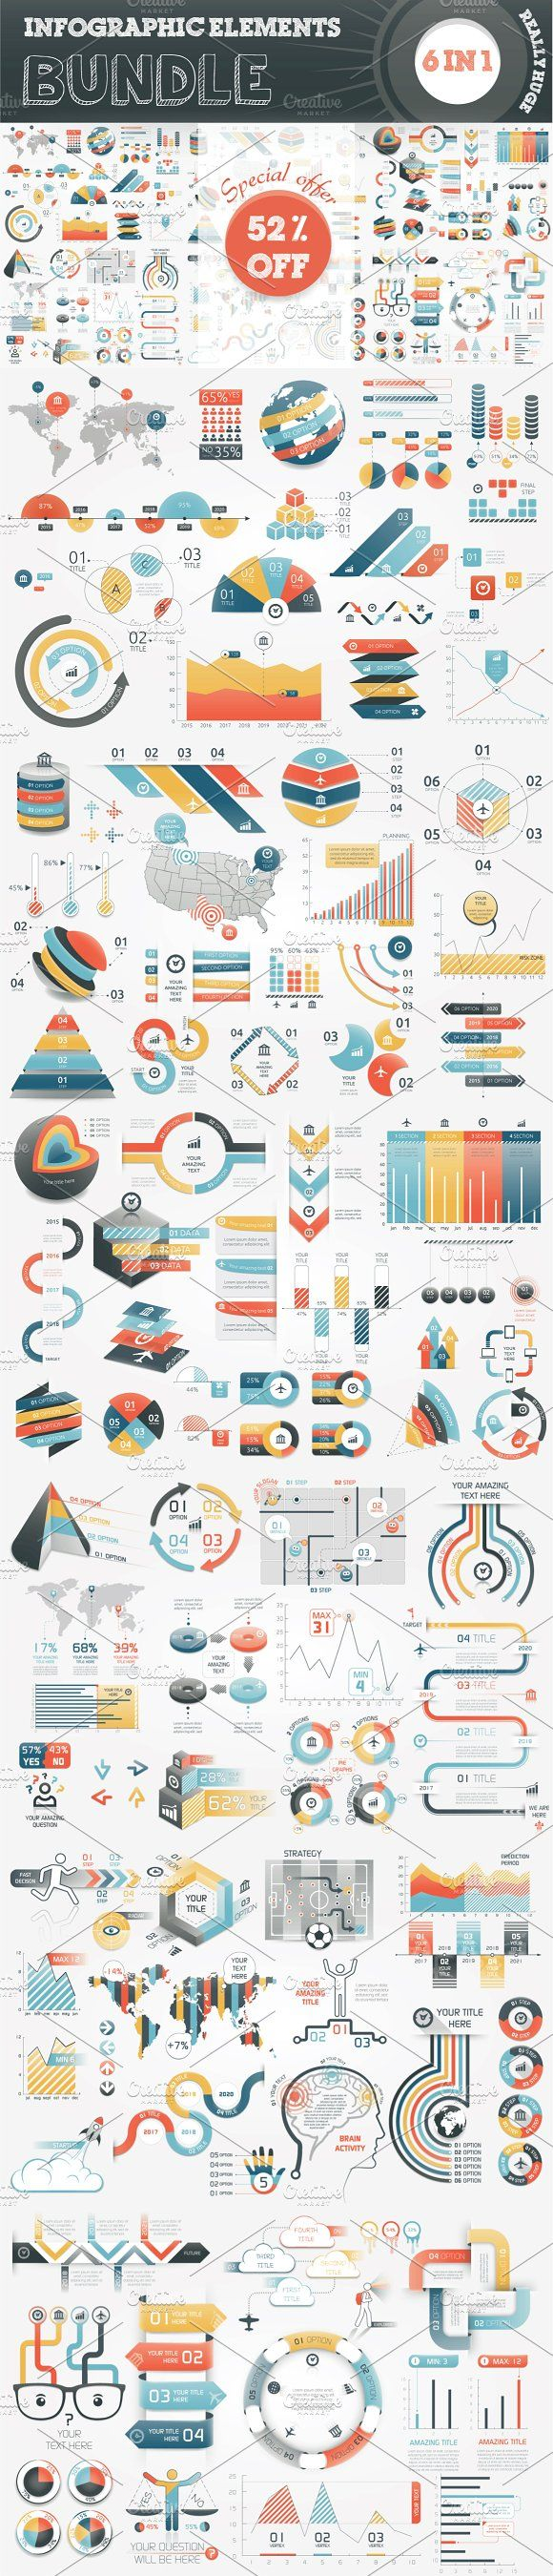 @newkoko2020 52% OFF Infographic Bundle by Infographic Paradise on @creativemarket #infographic #infographics #bundle #design #template #megabundle #bigbundle #presentation #vector #business #layout #creative #graph #information #visualization